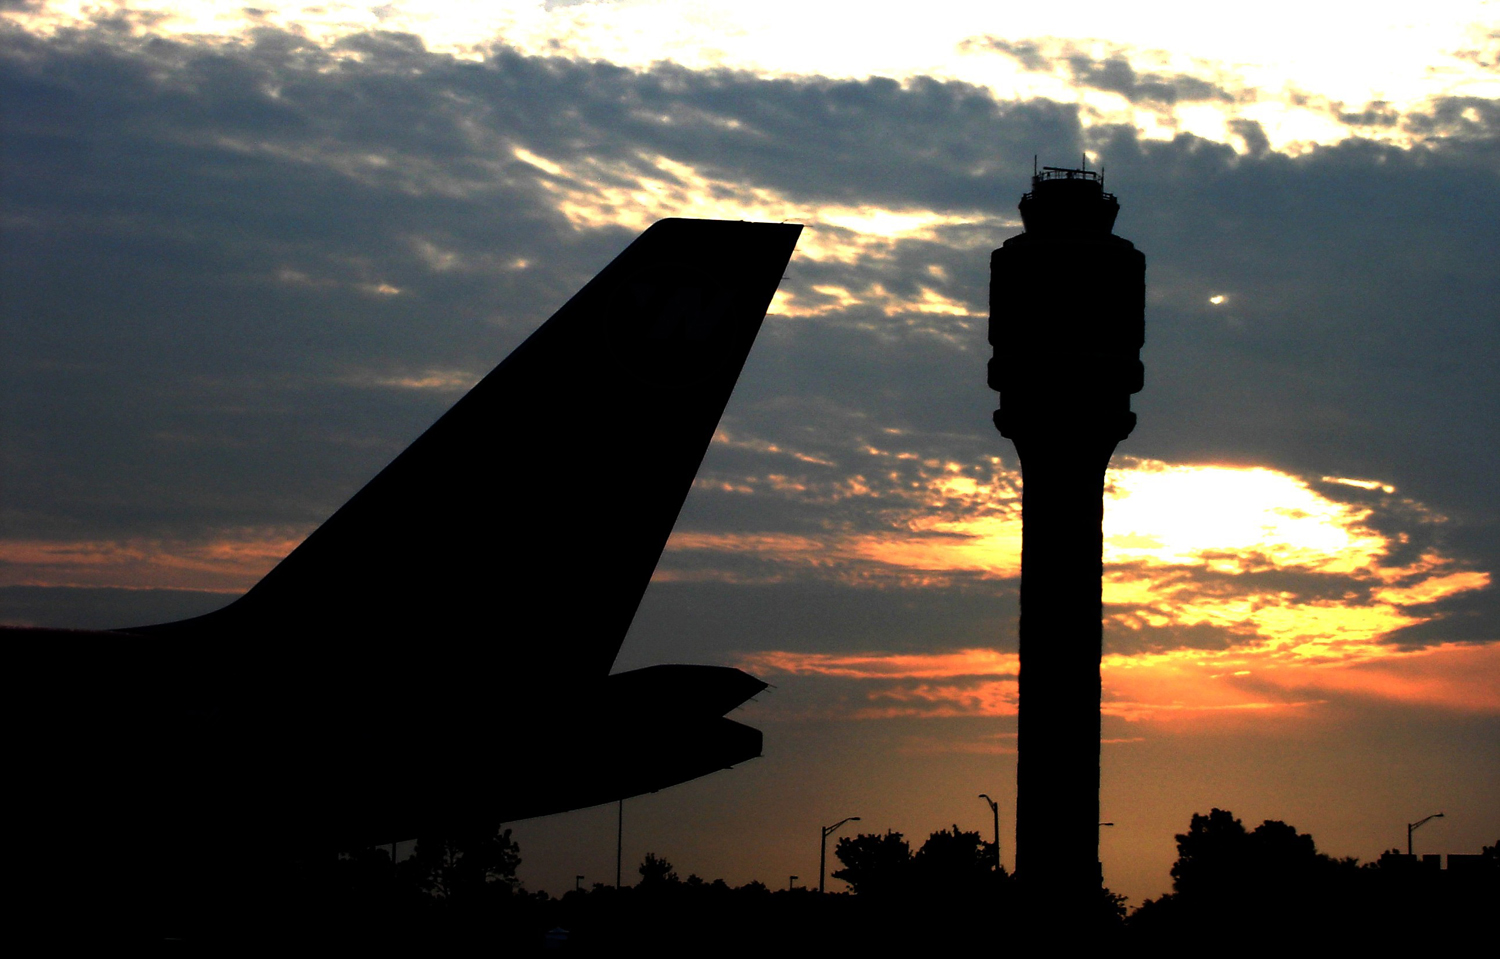 FAA Tower & Tail at Sunrise